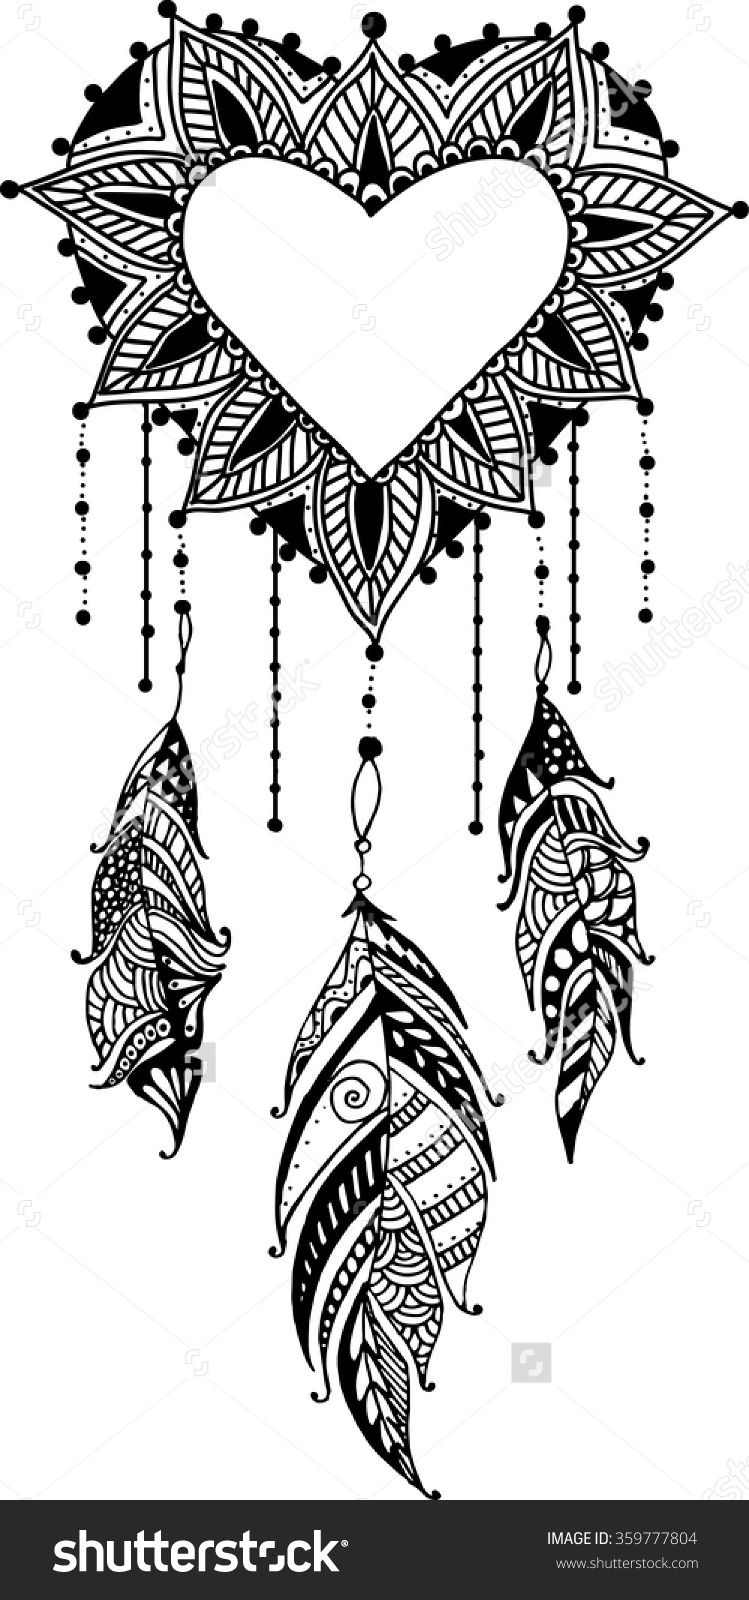 Hand-Drawn Heart Mandala Dreamcatcher With Feathers